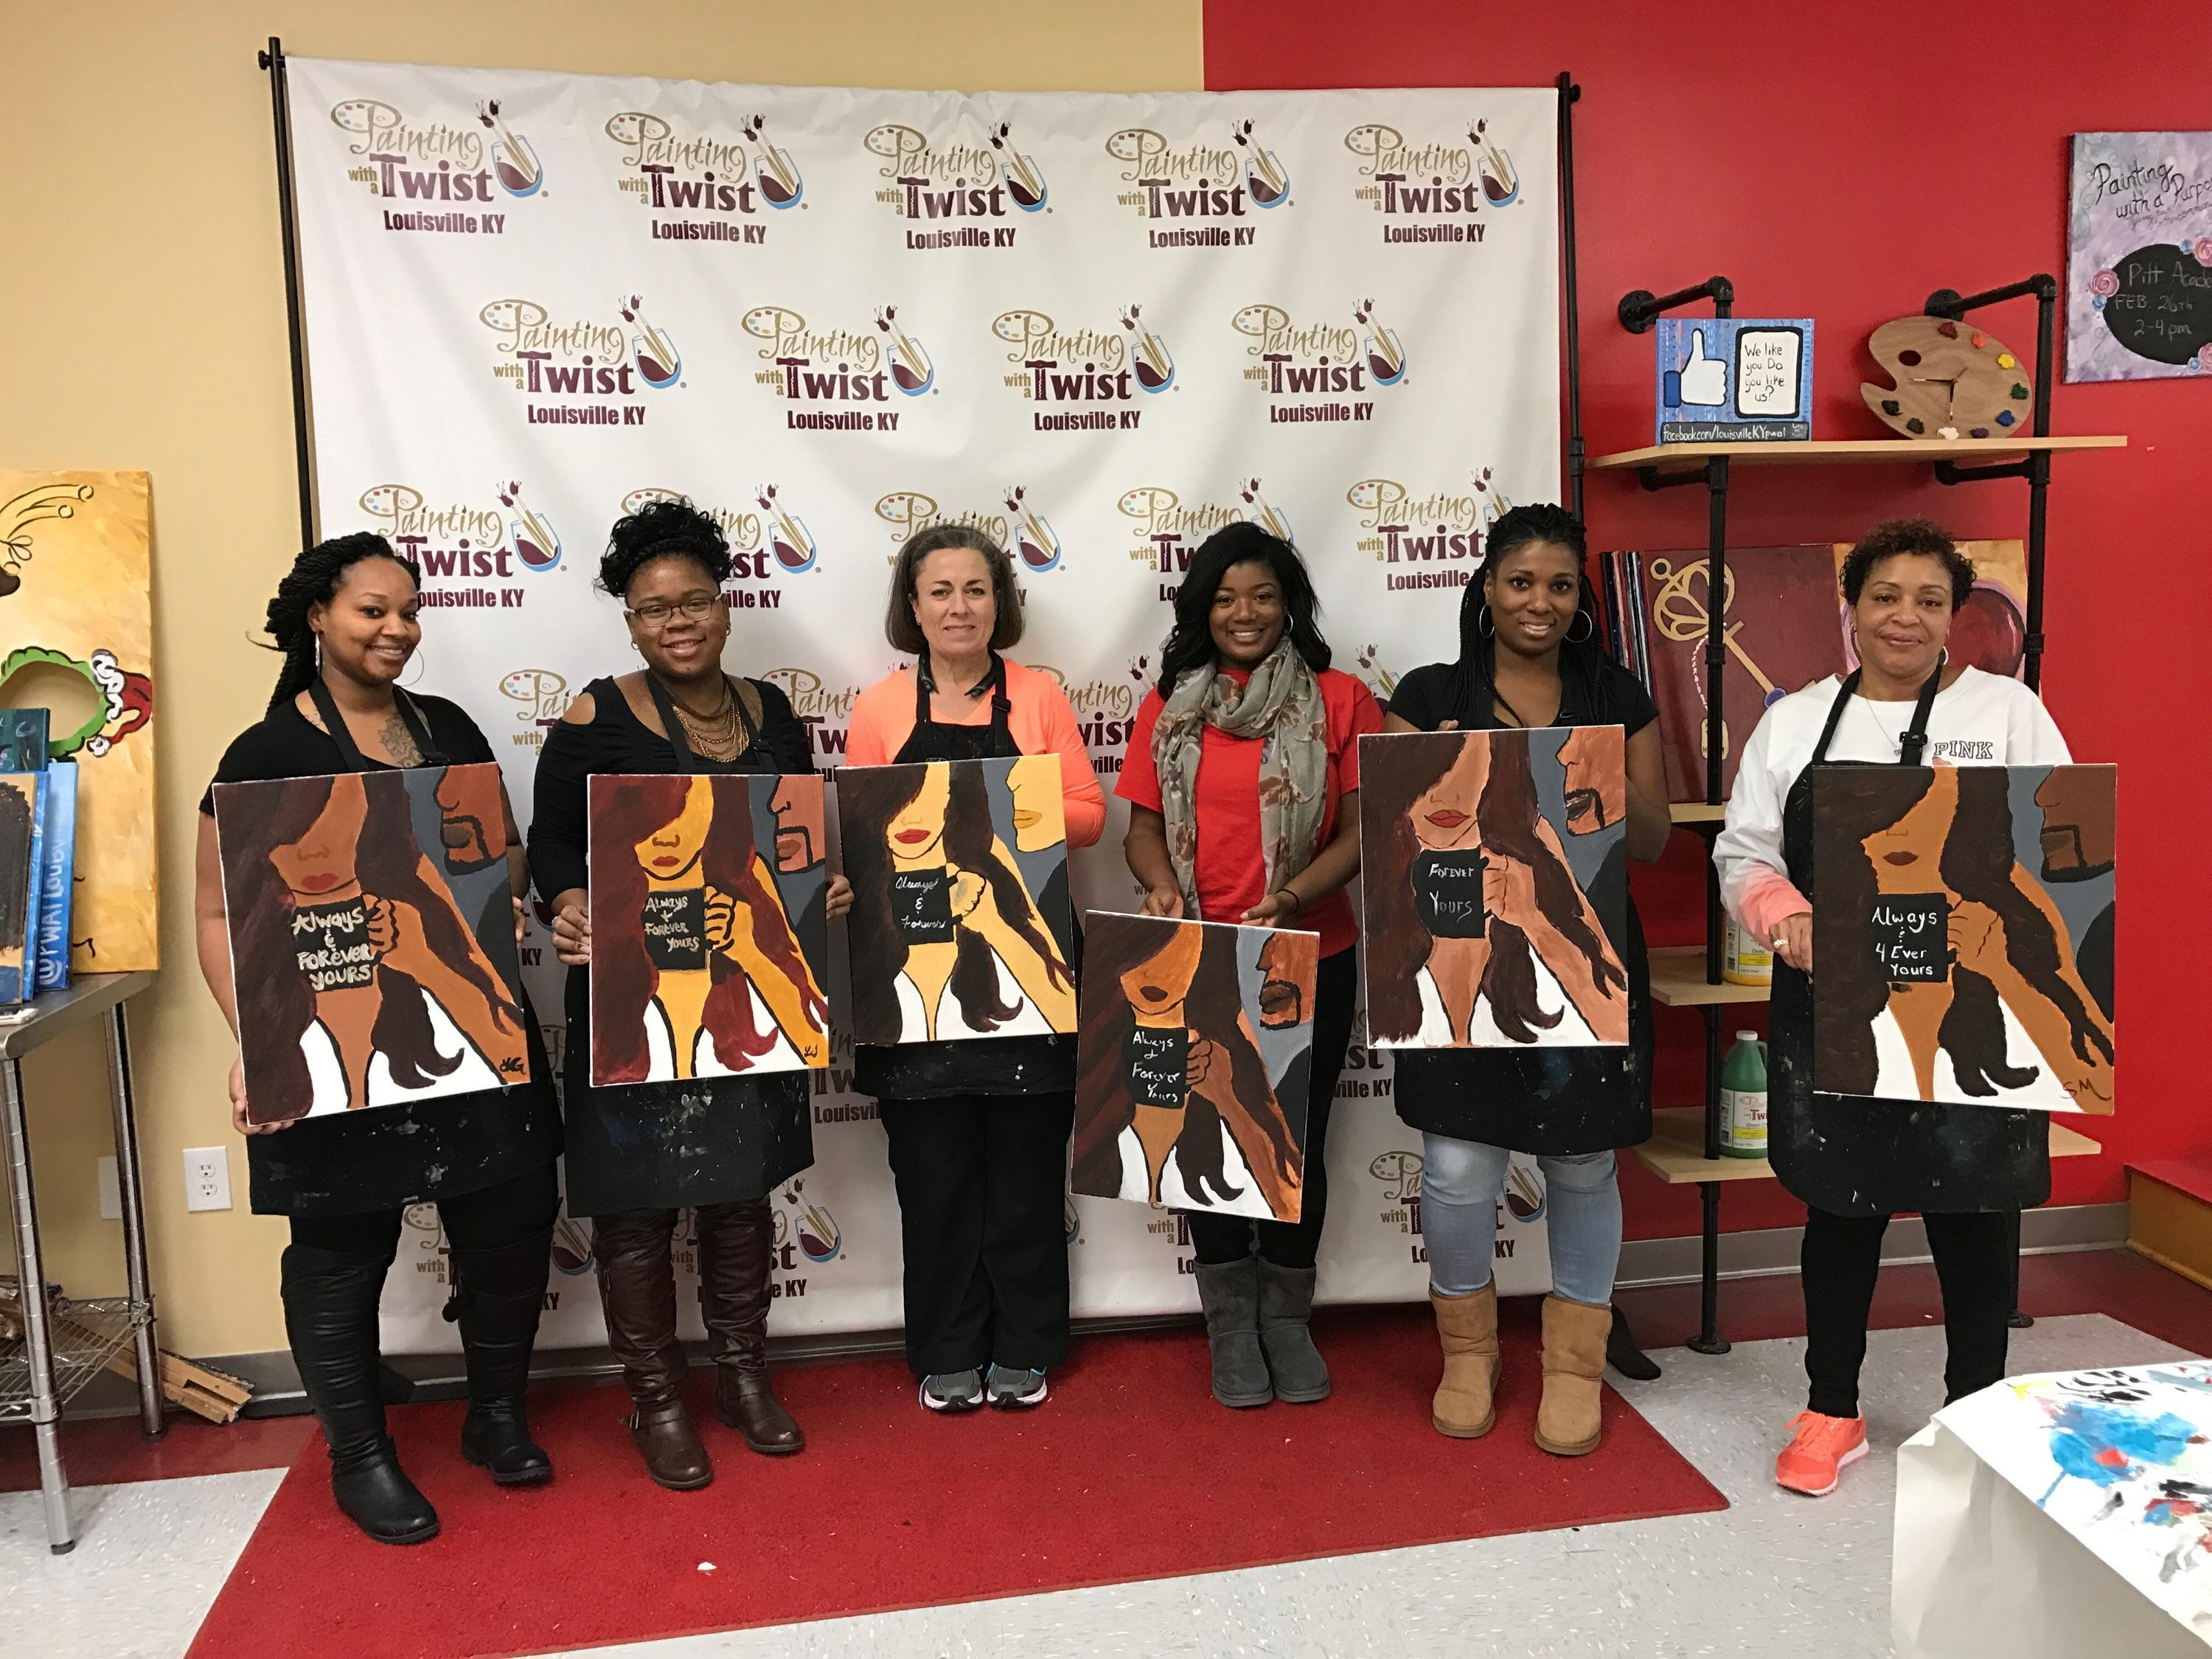 Painting with a twist in louisville ky 40245 for Paint and sip louisville co